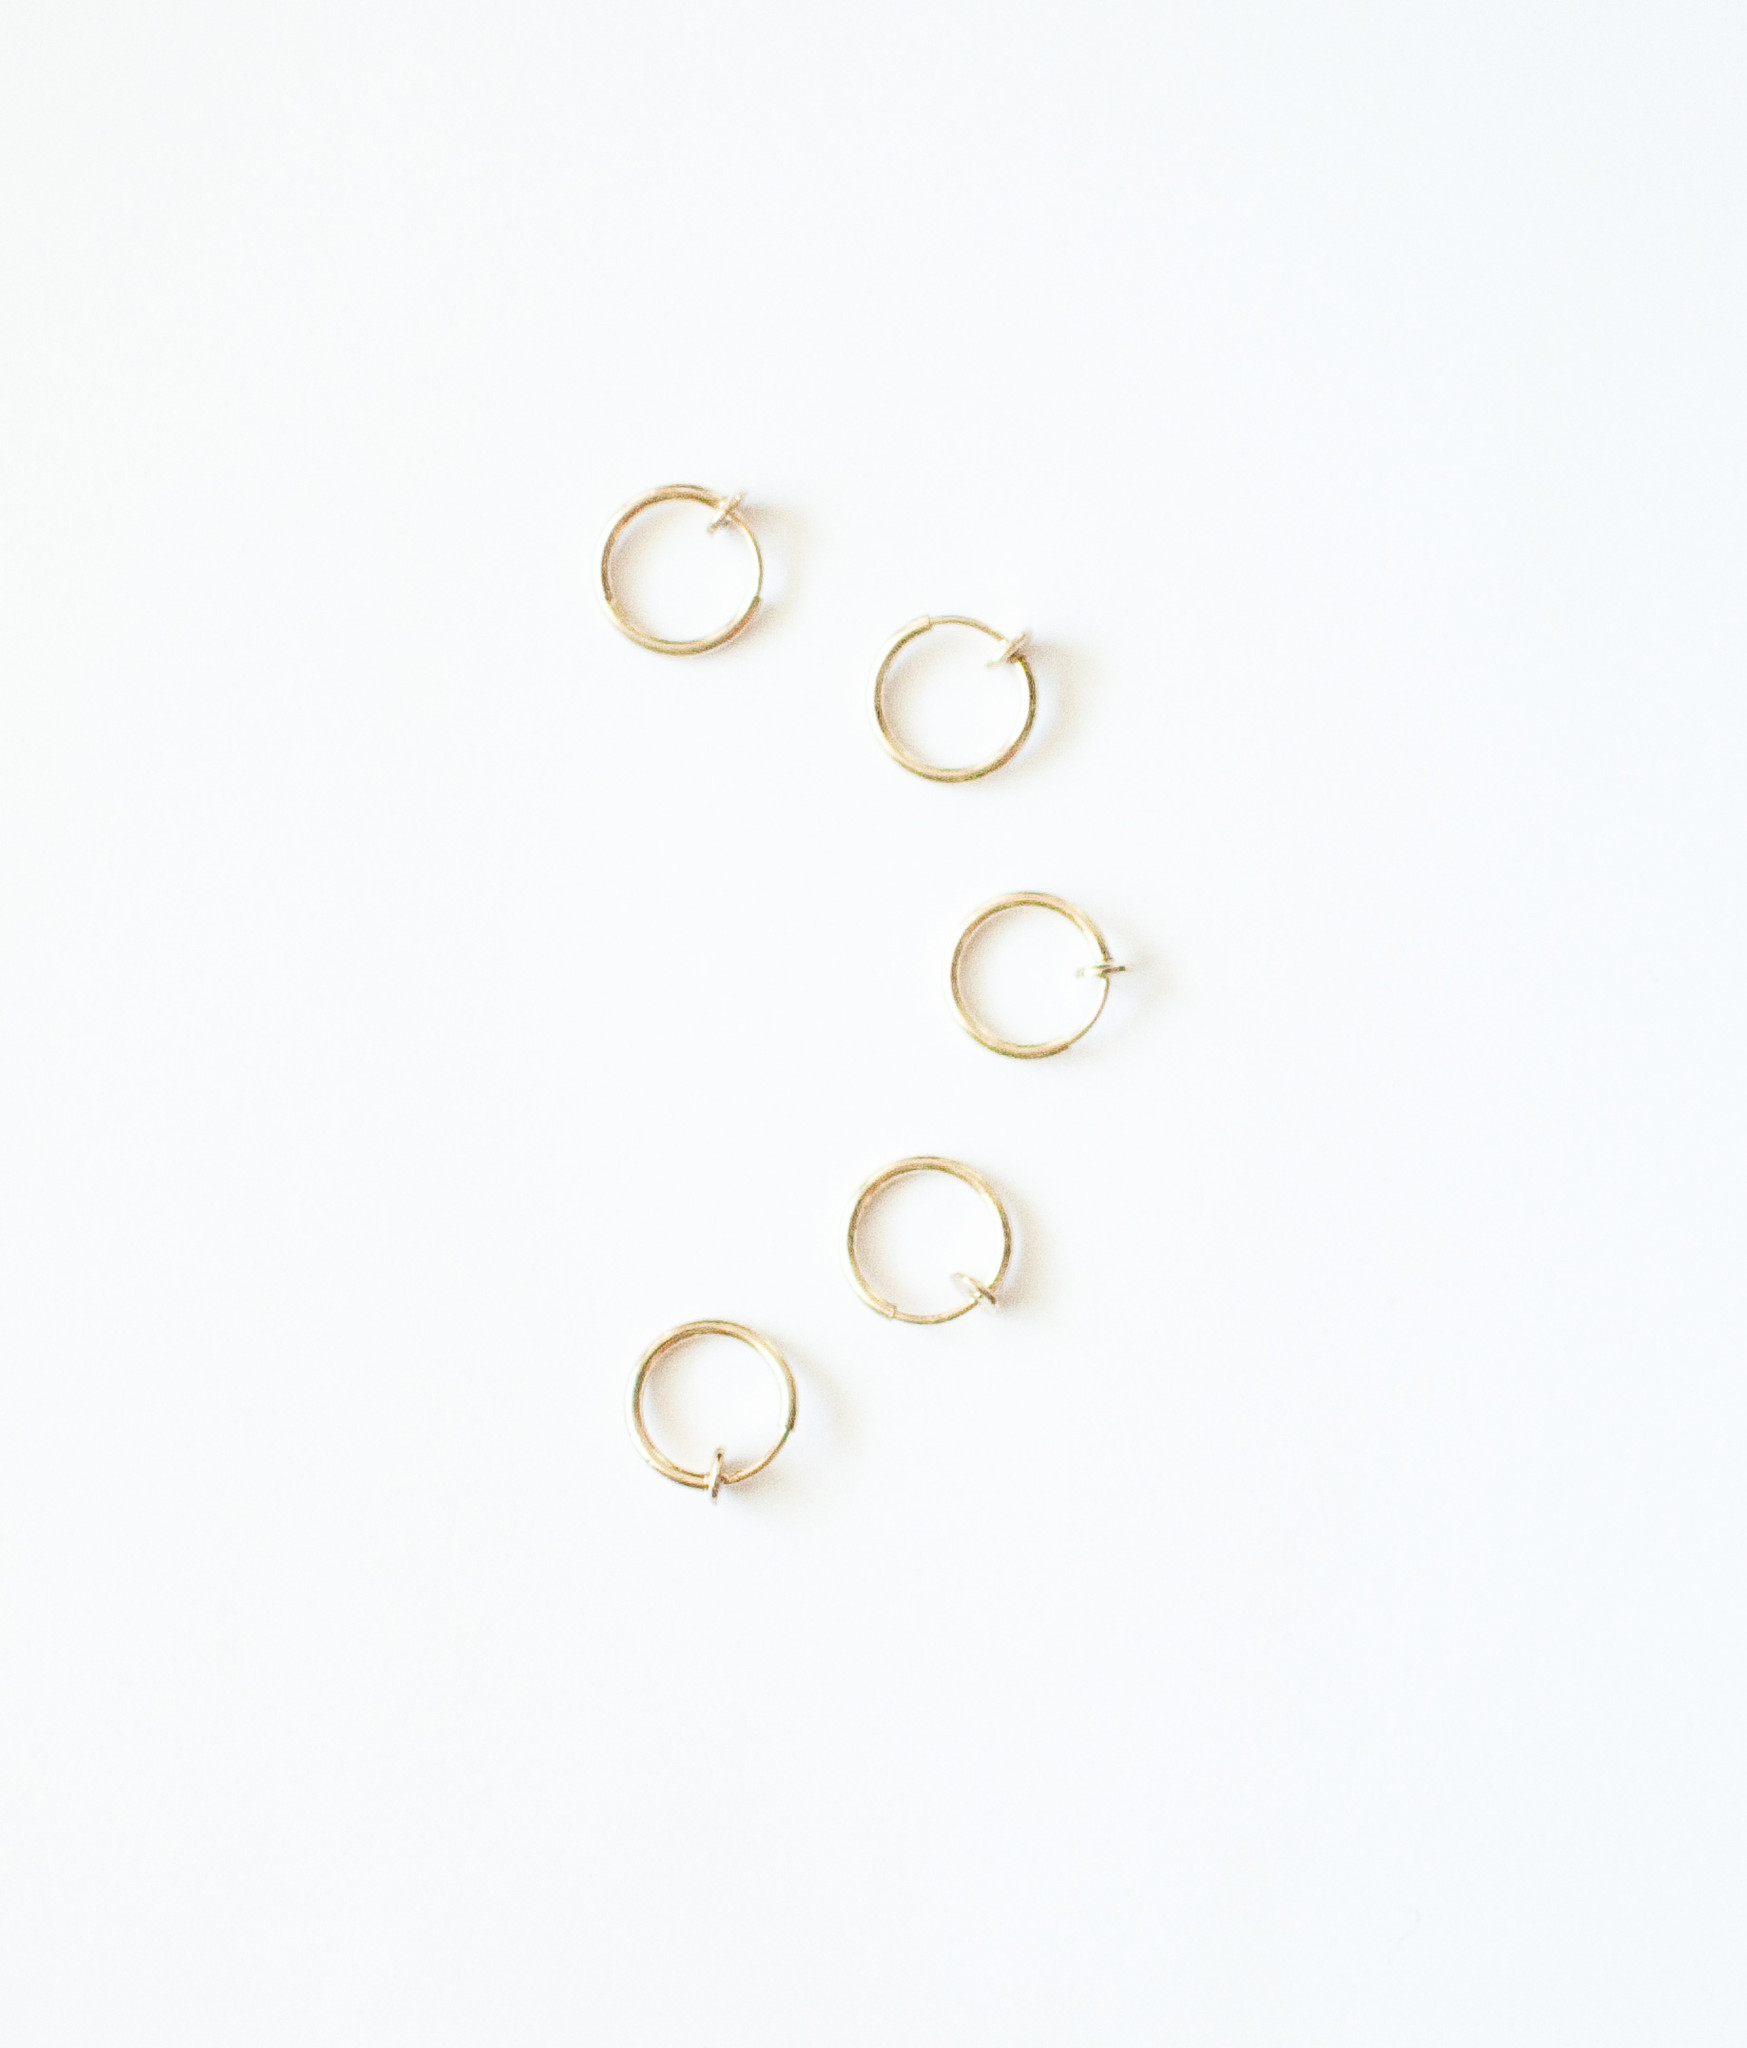 Retract ear cuff set